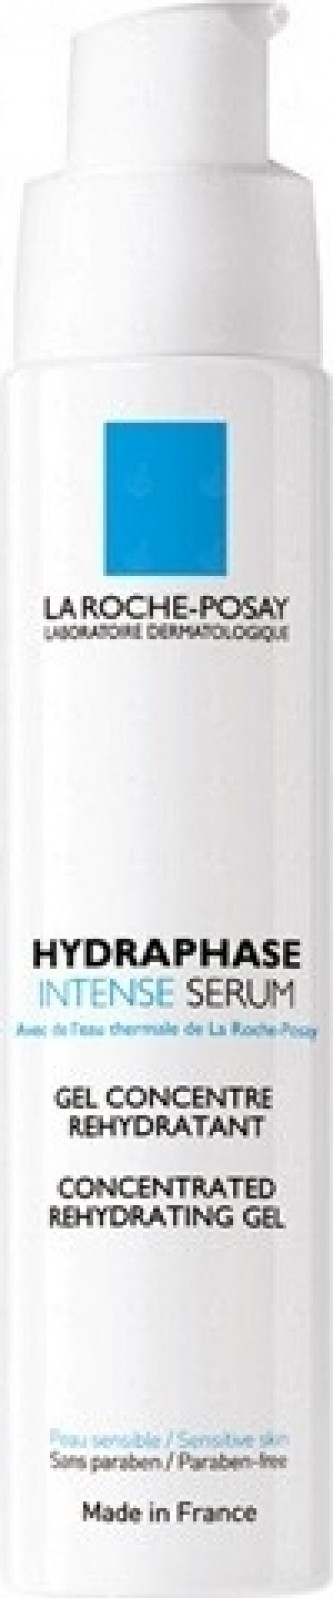 La Roche-Posay Hydraphase Intense Serum Hidratantni serum za lice 30 ml